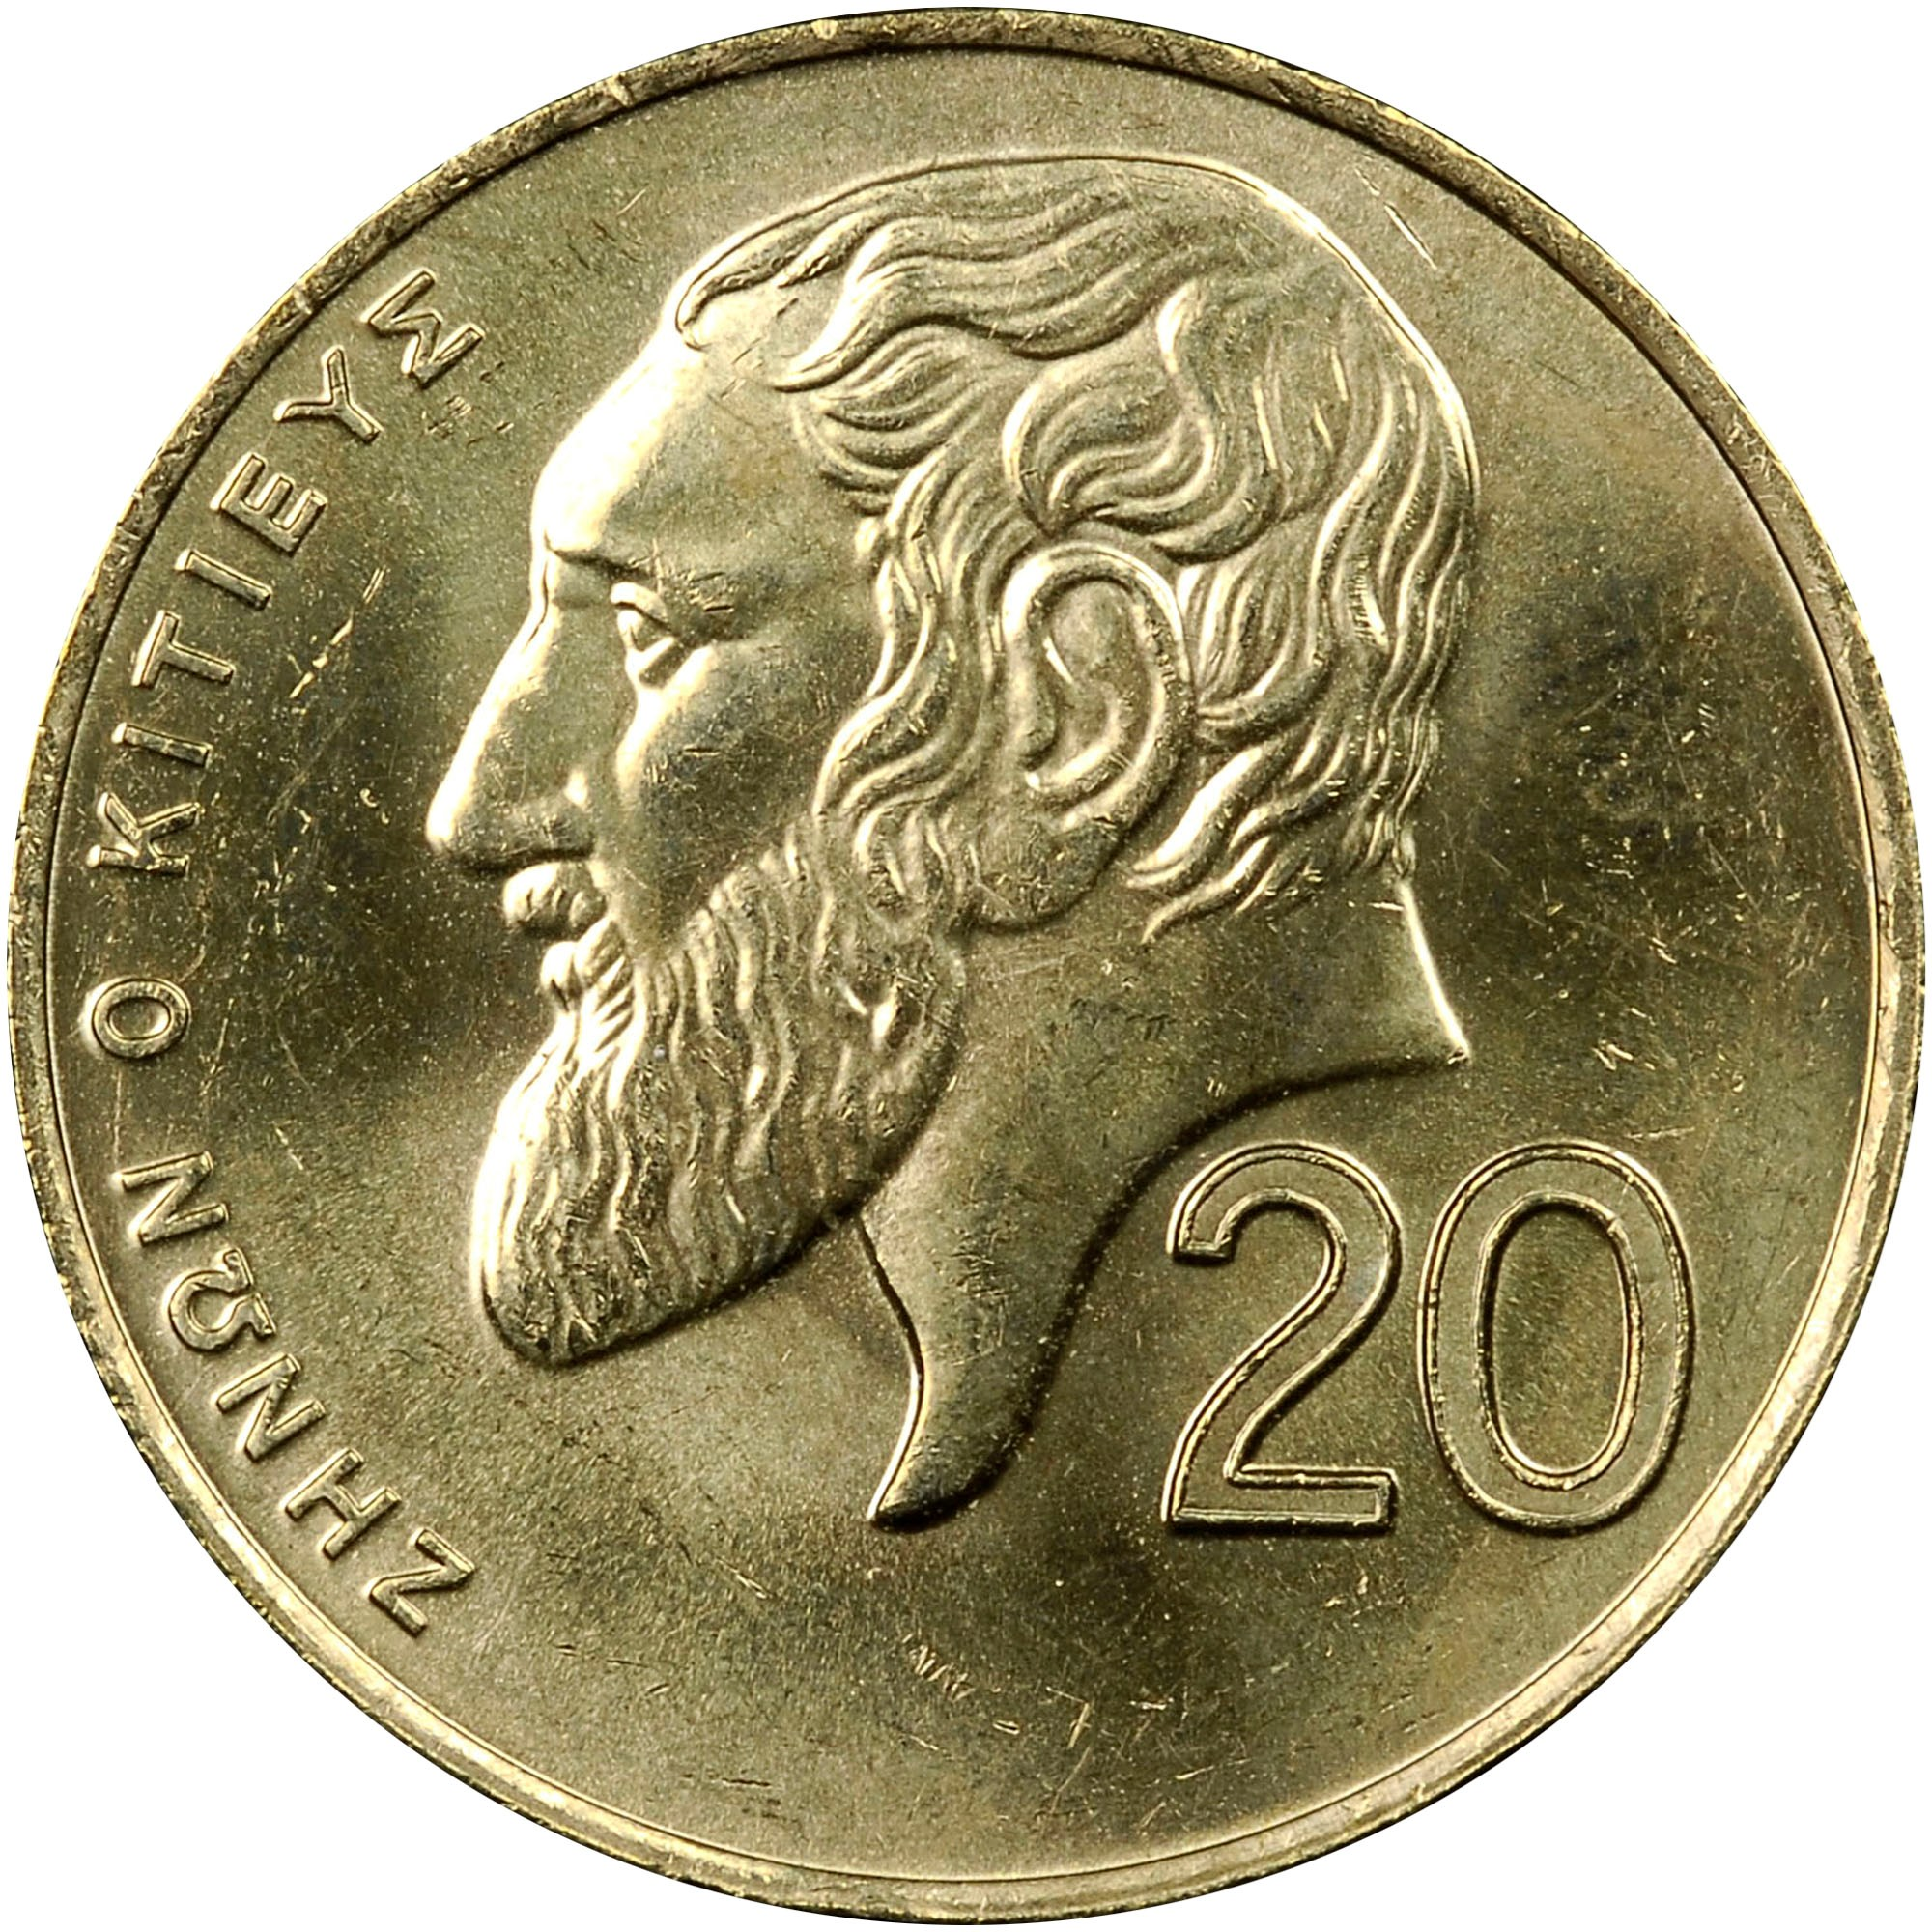 Cyprus 20 Cents Km 62 2 Prices Amp Values Ngc